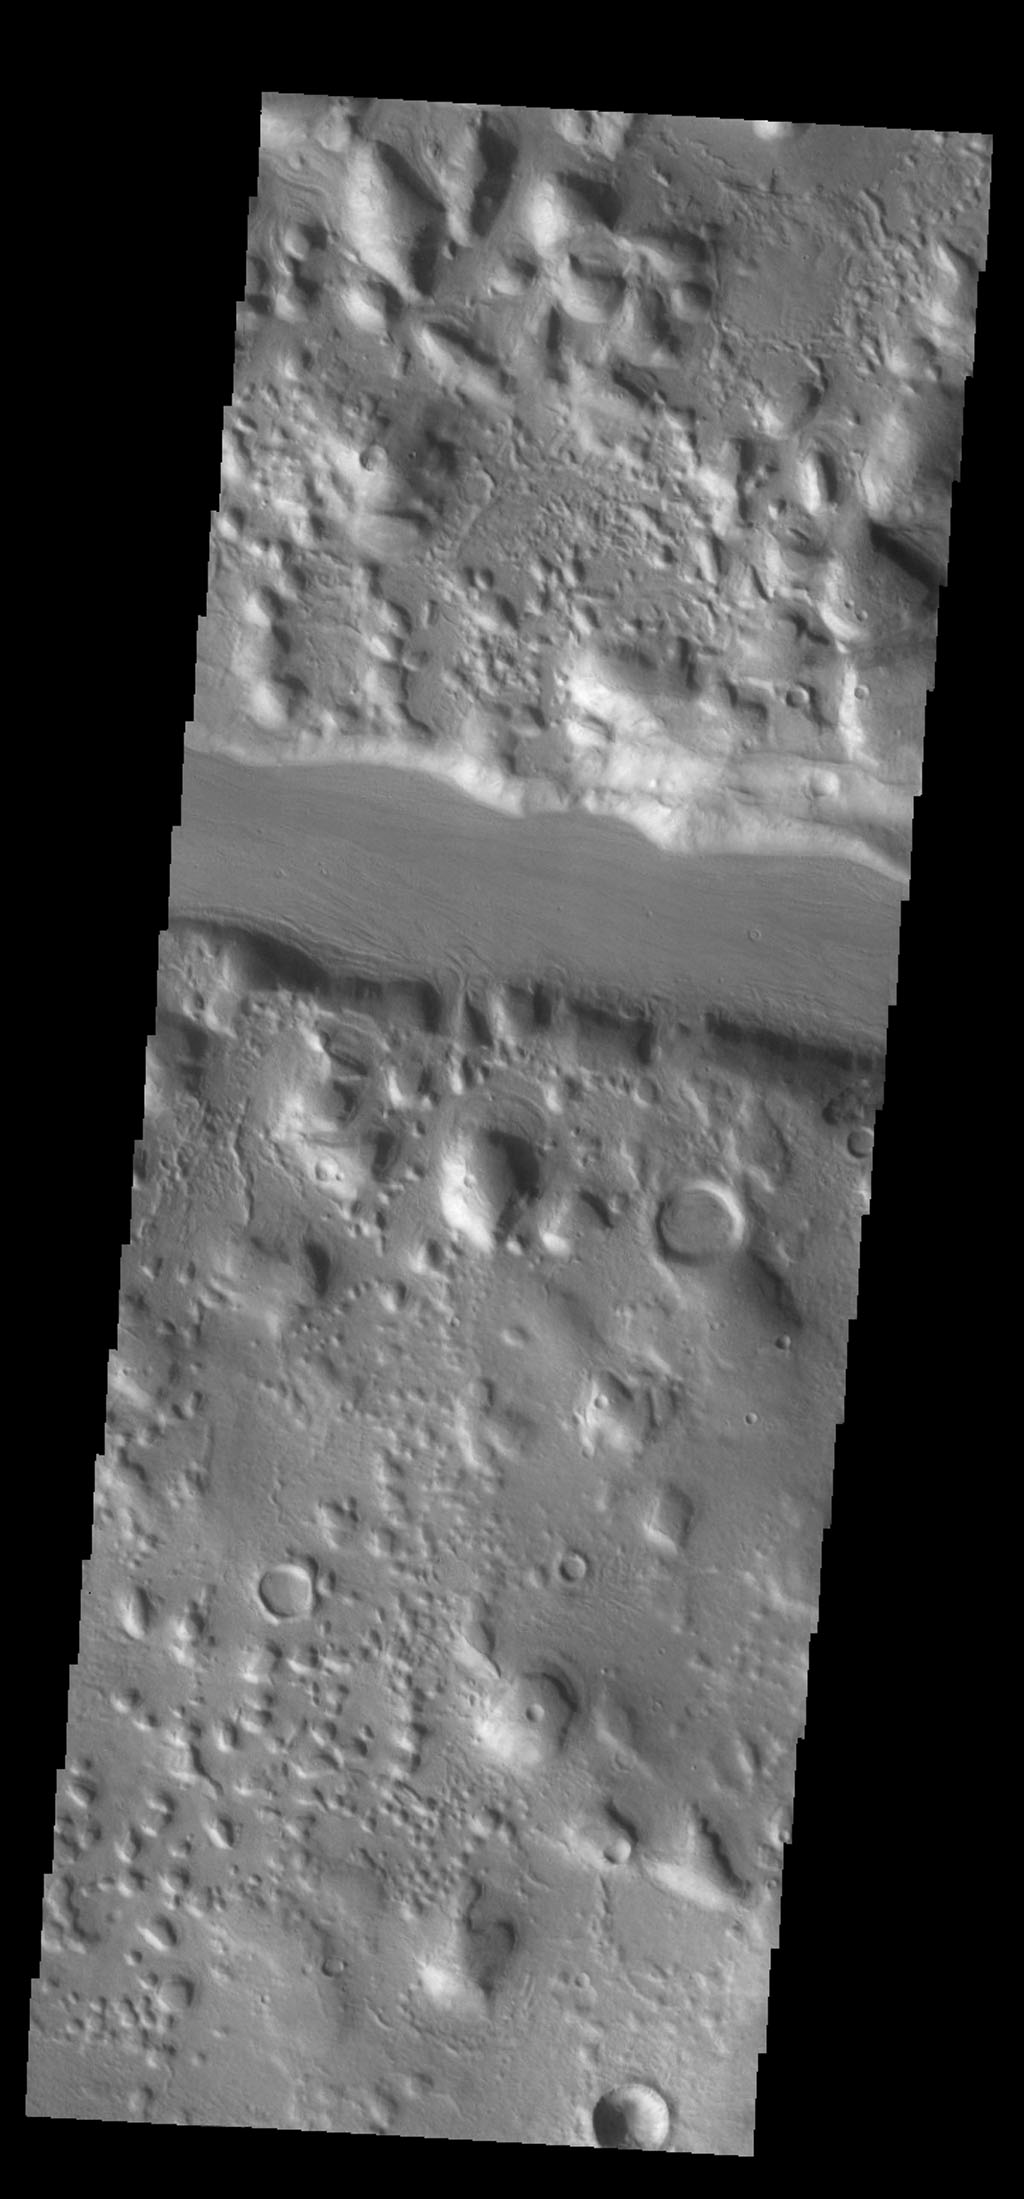 This channel-like feature is actually a large fracture that cuts through a small highlands as seen by NASA's 2001 Mars Odyssey spacecraft.